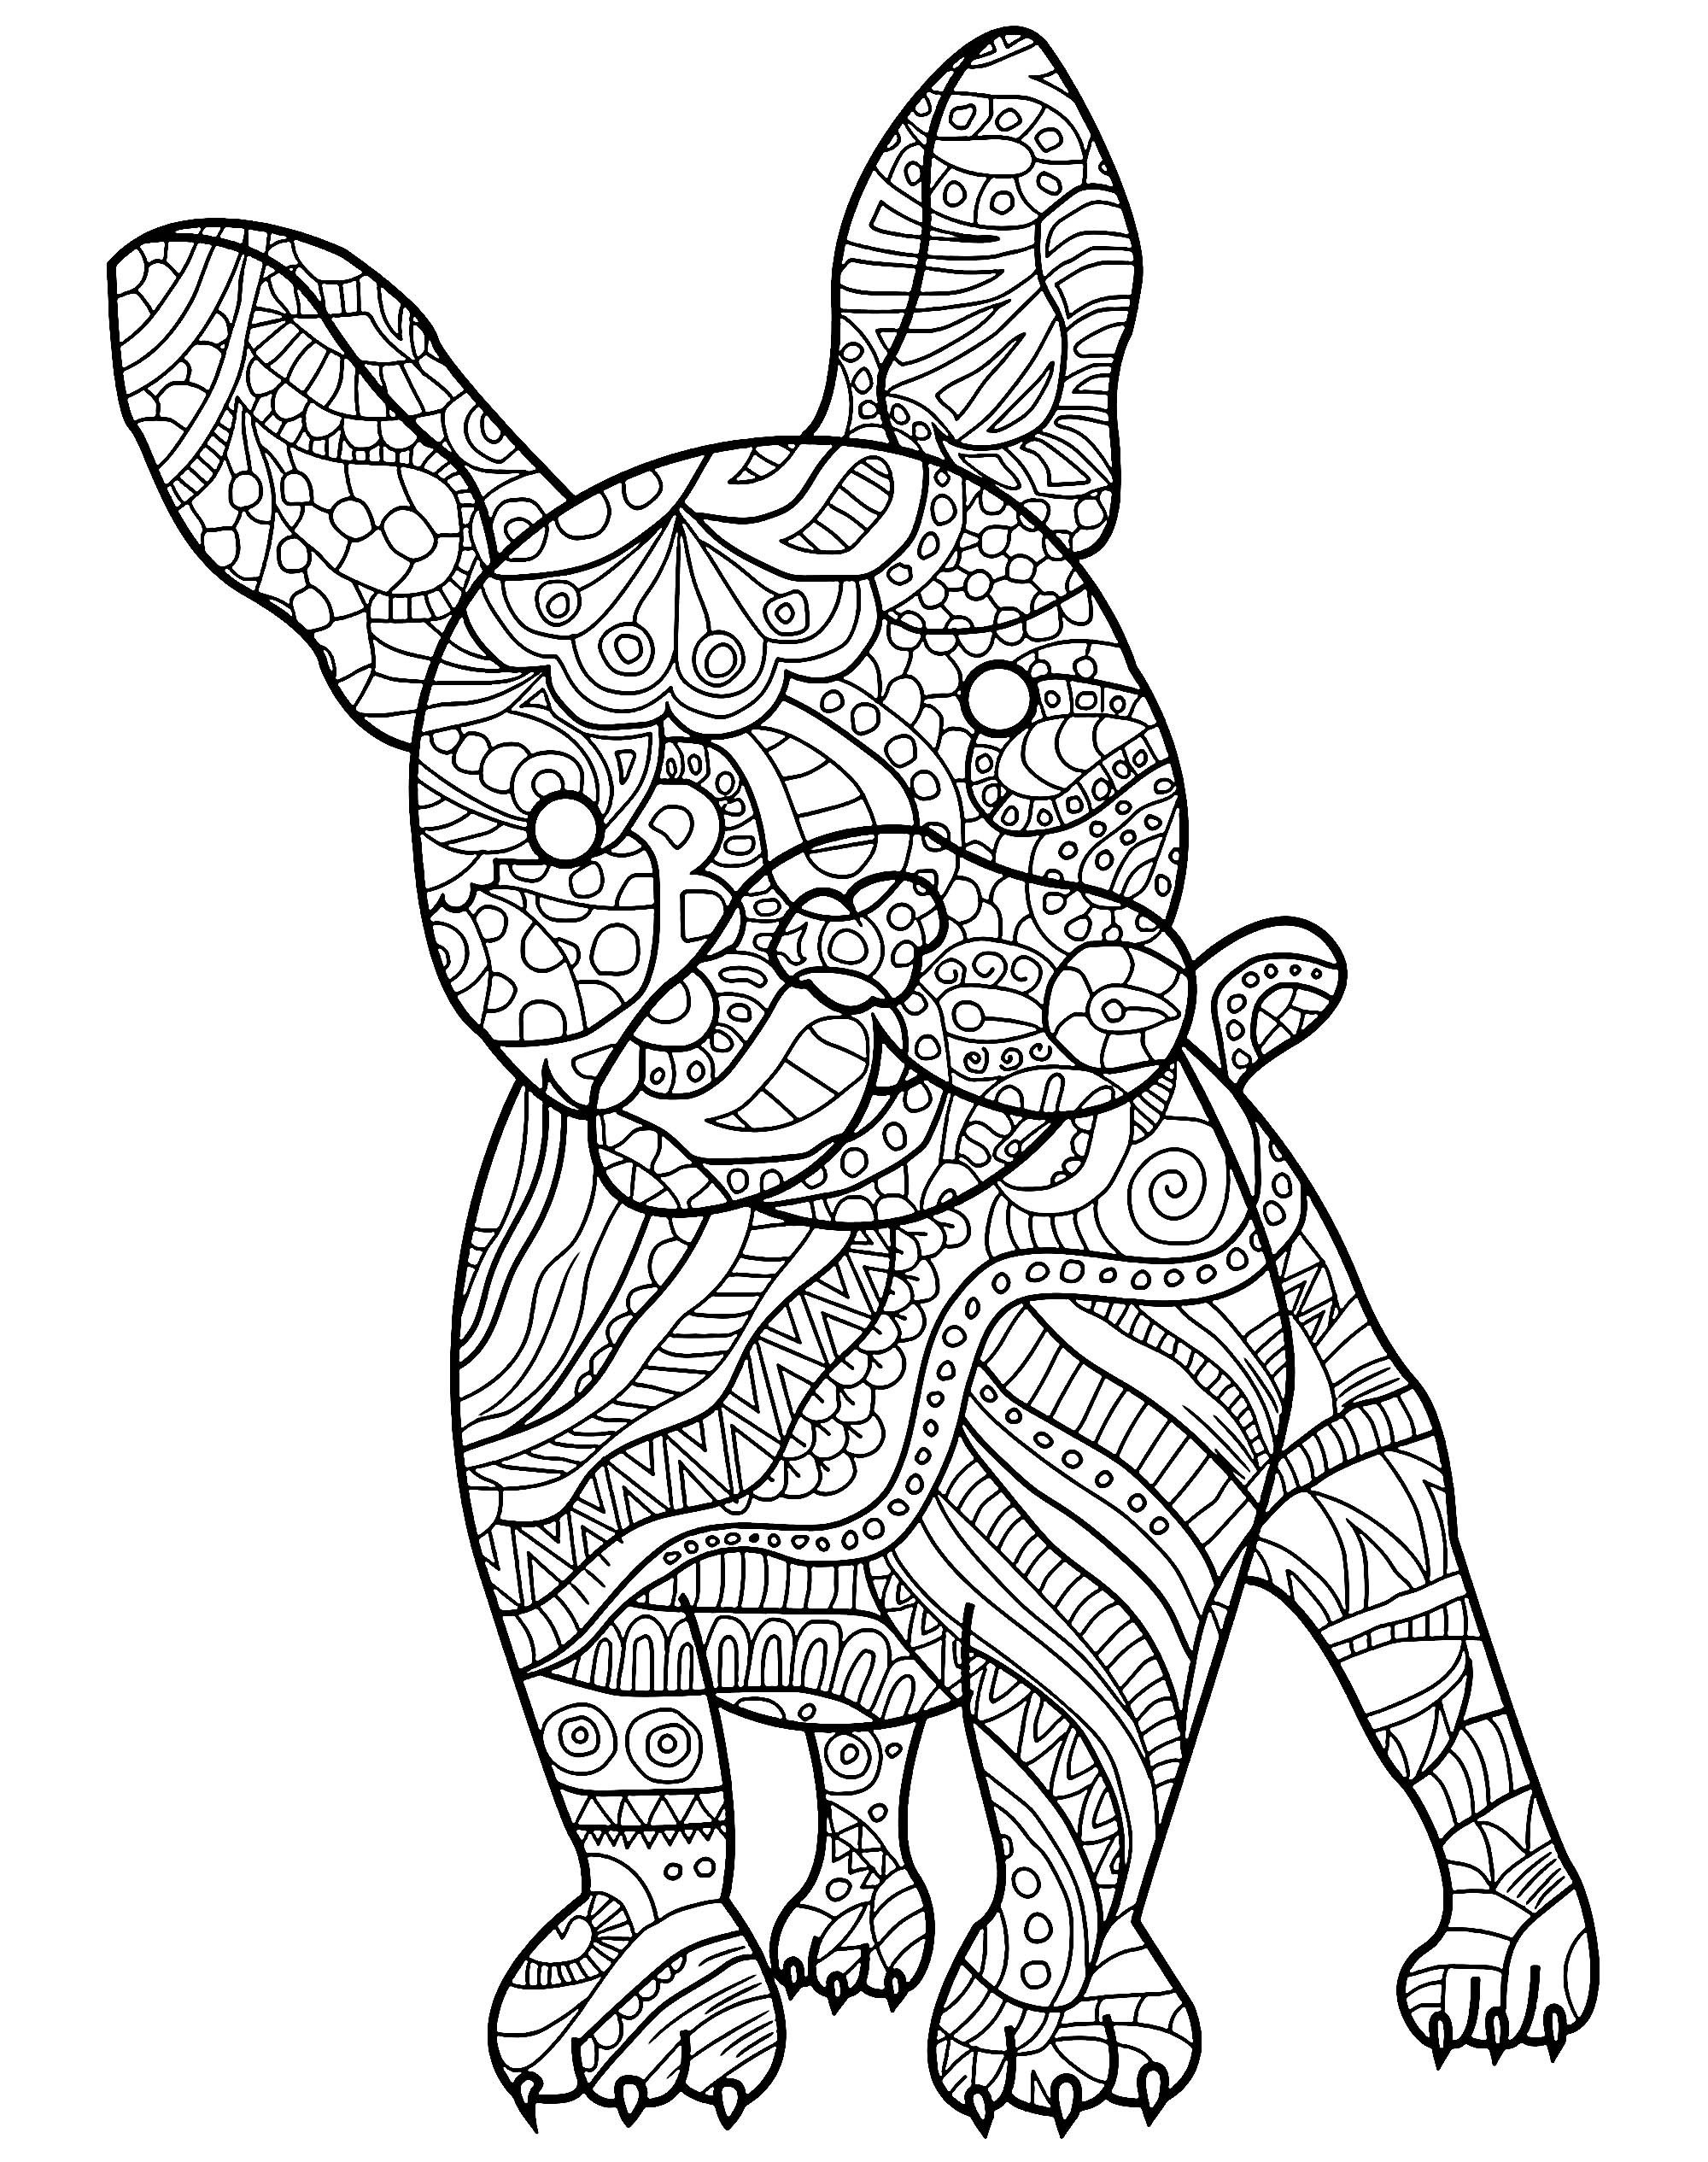 dog coloring pages free dogs to download for free dogs kids coloring pages coloring free dog pages